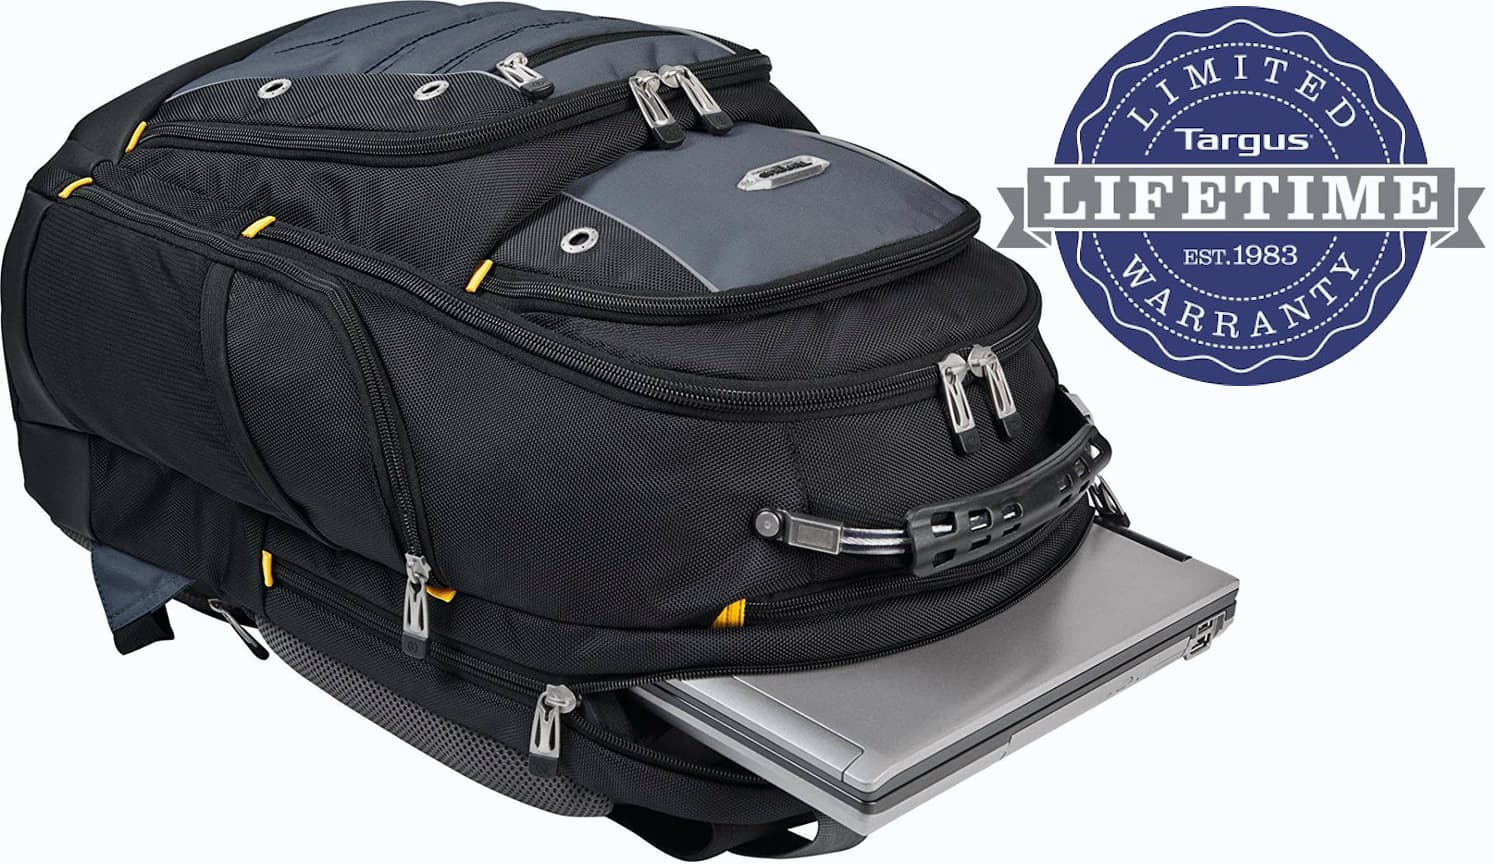 Stylish Laptop Backpack as the second related product of the Best Laptop Backpack